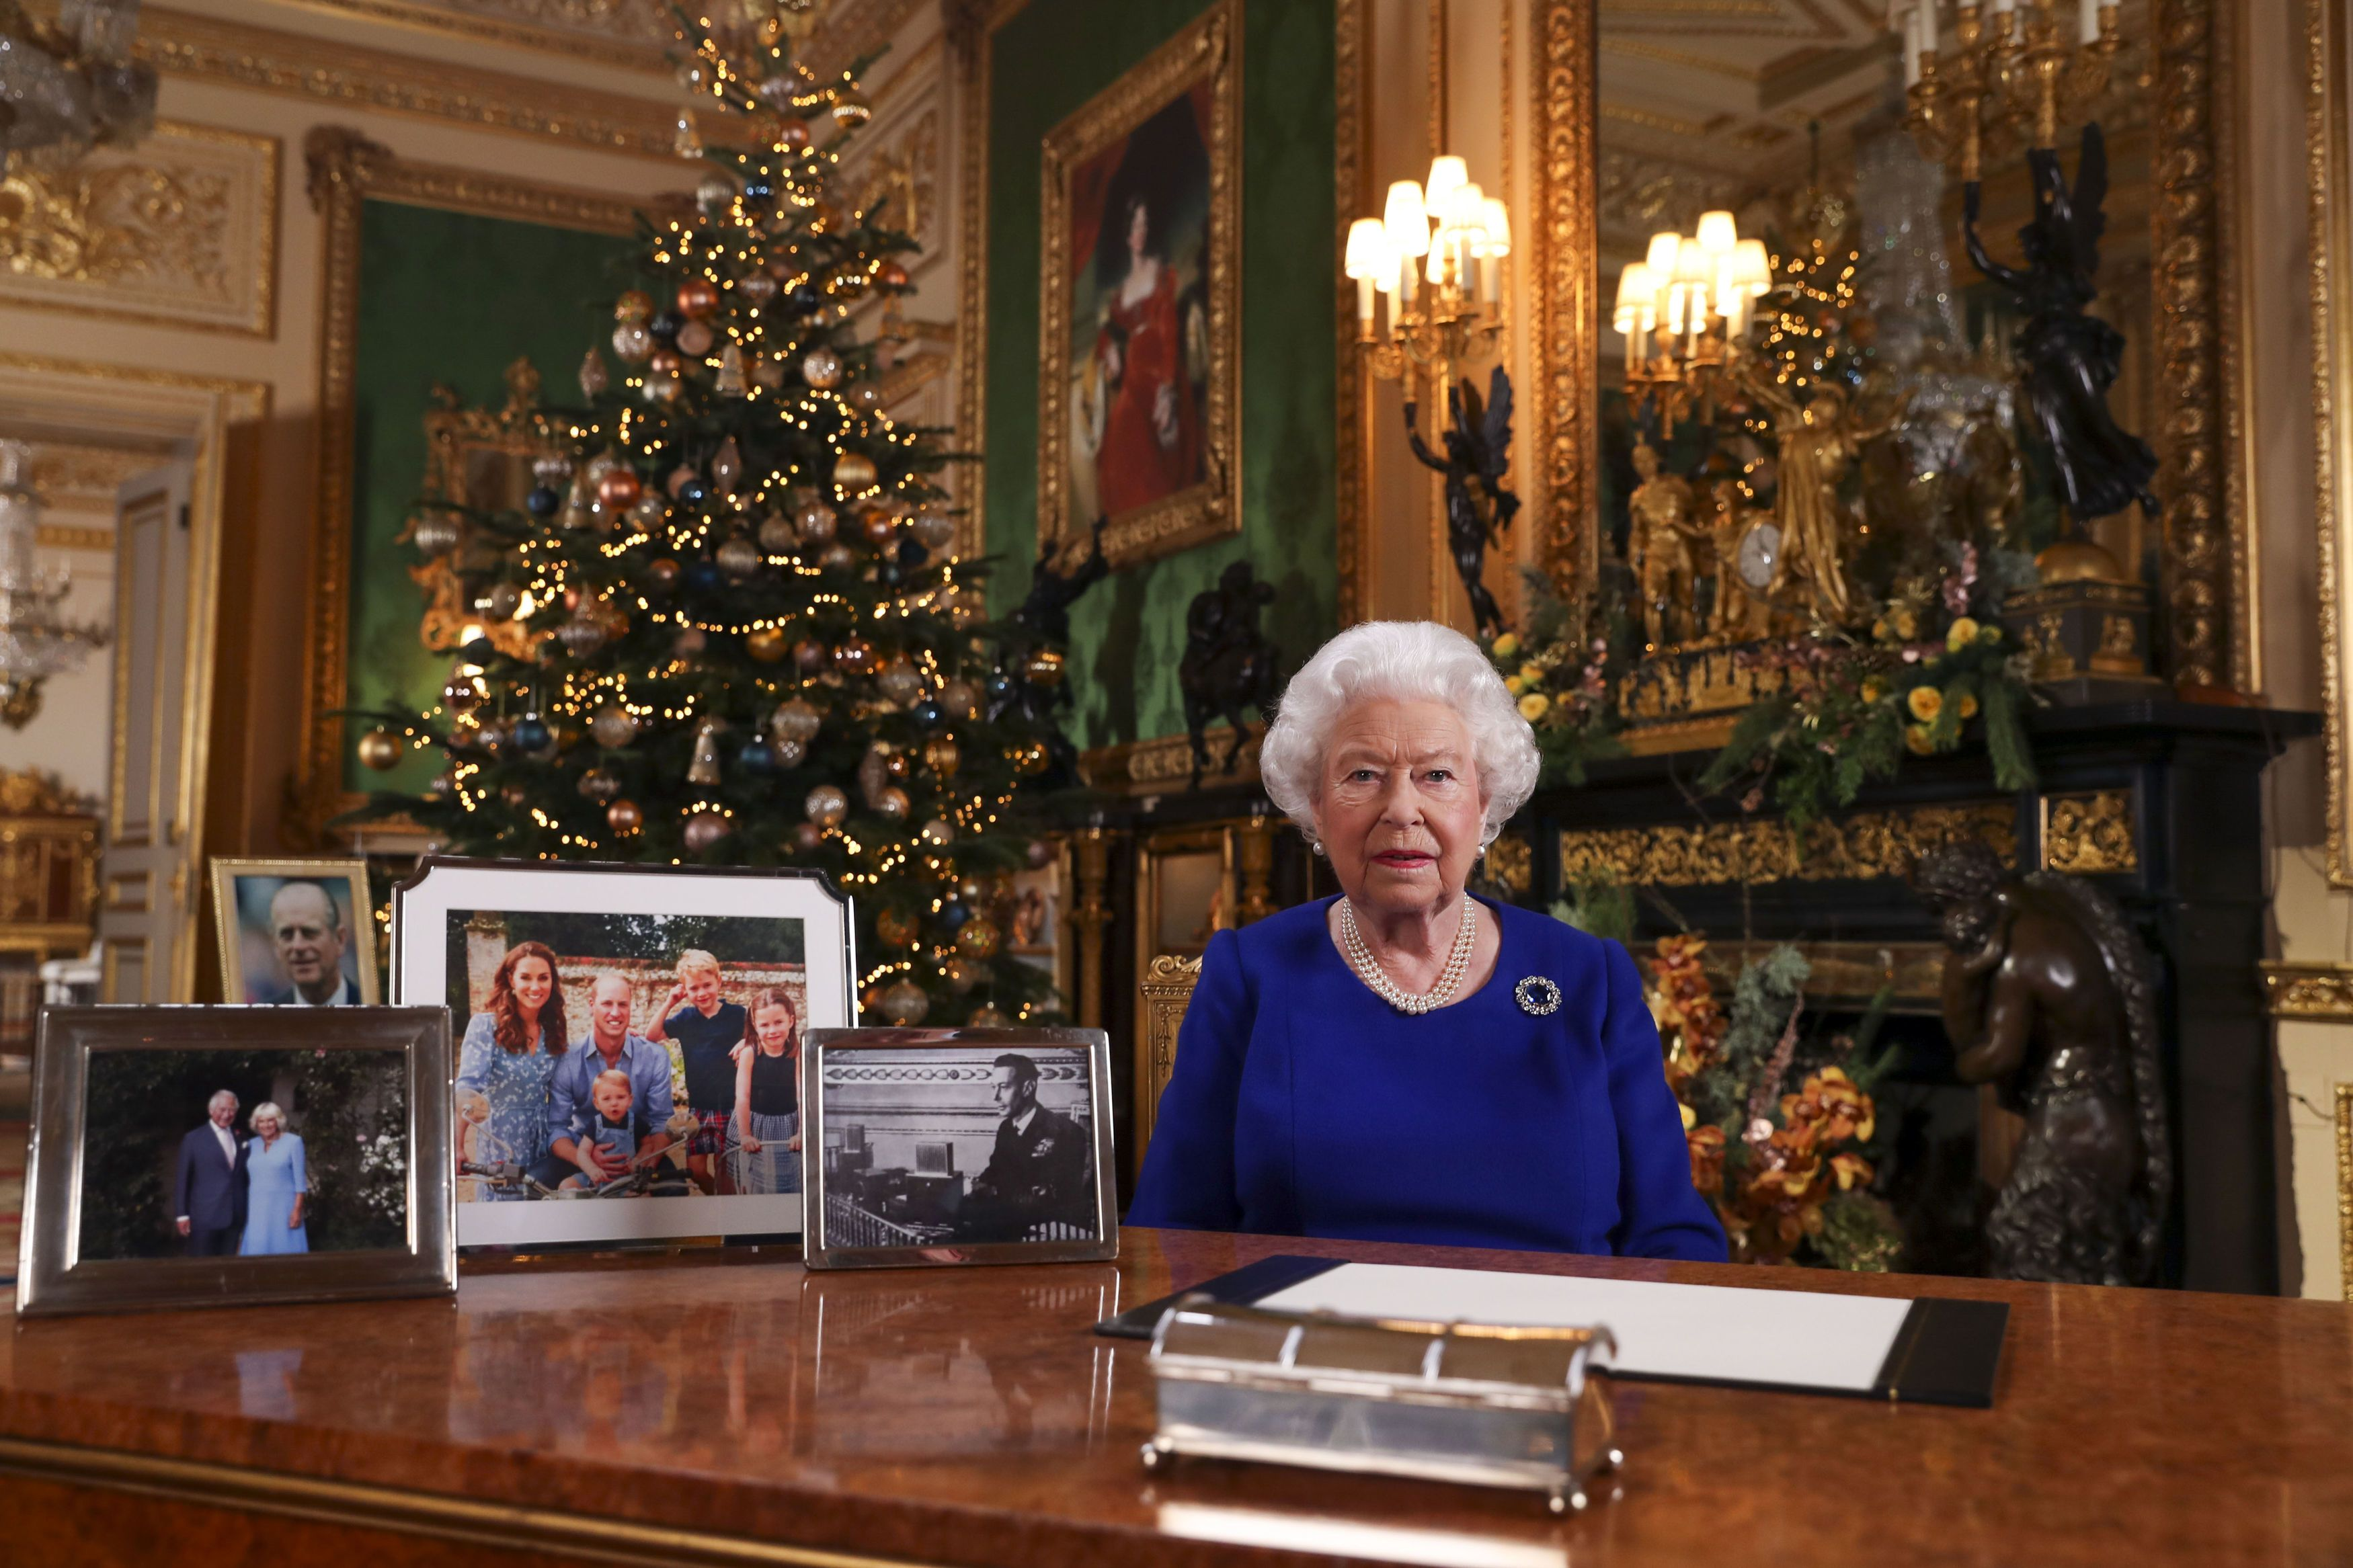 The Queen of England Keeps Her Christmas Decorations up Until February to Honor Someone Special